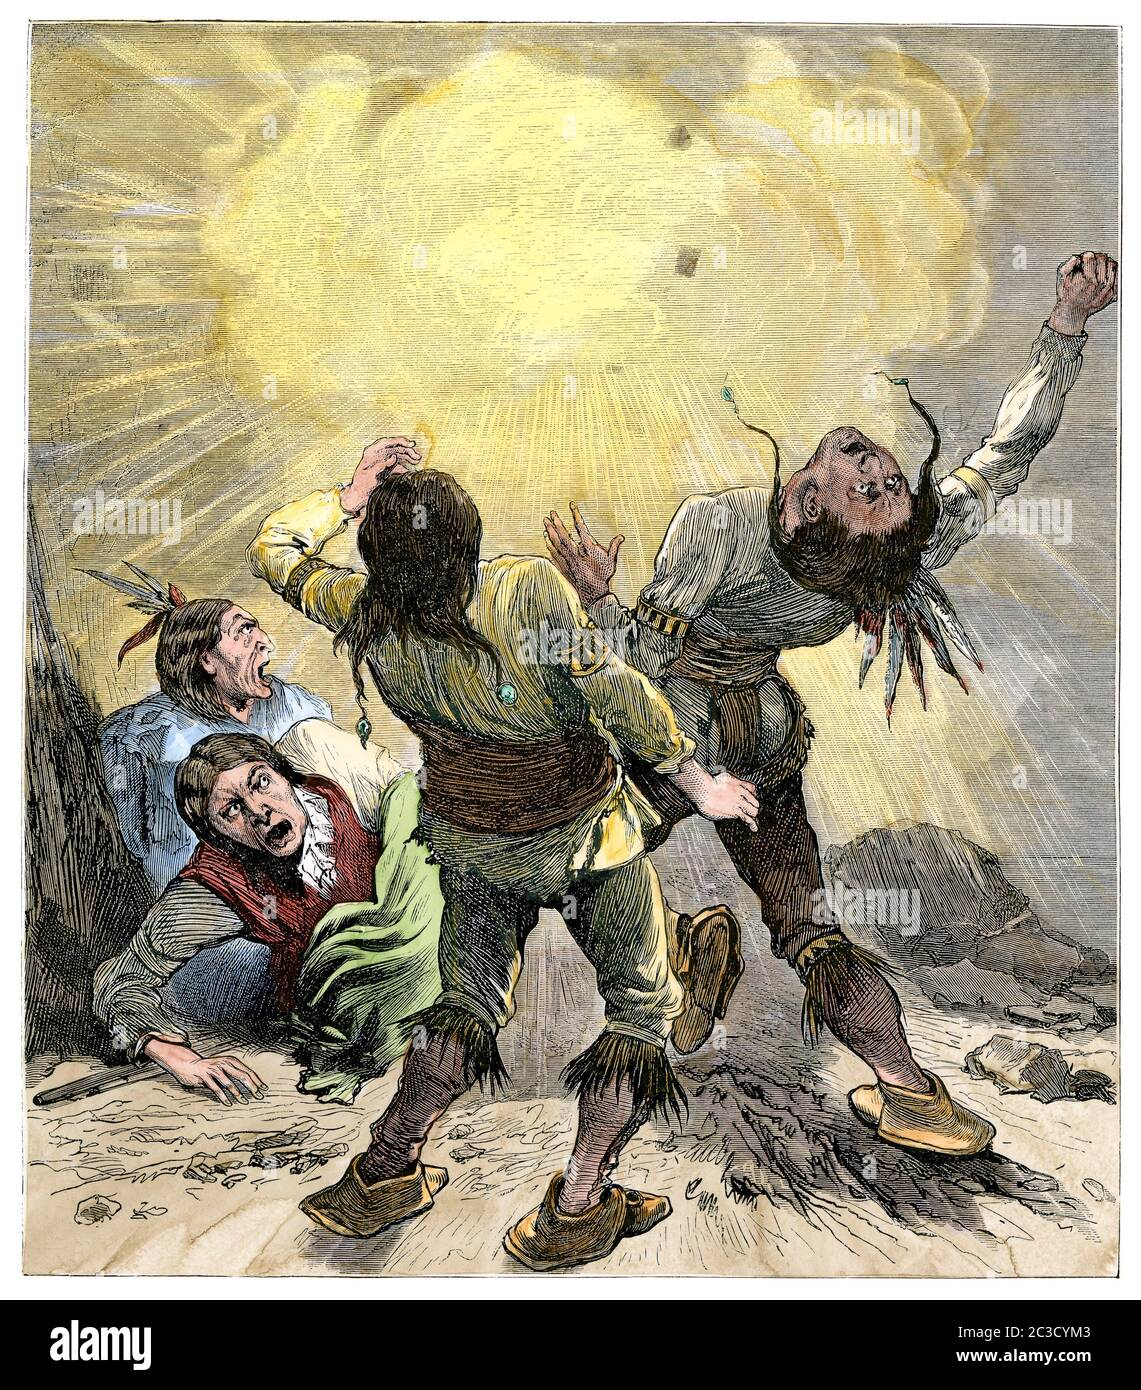 Modocs killed by an exploding shell in their Lava Beds stronghold, Modoc War, 1870s. Hand-colored woodcut Stock Photo